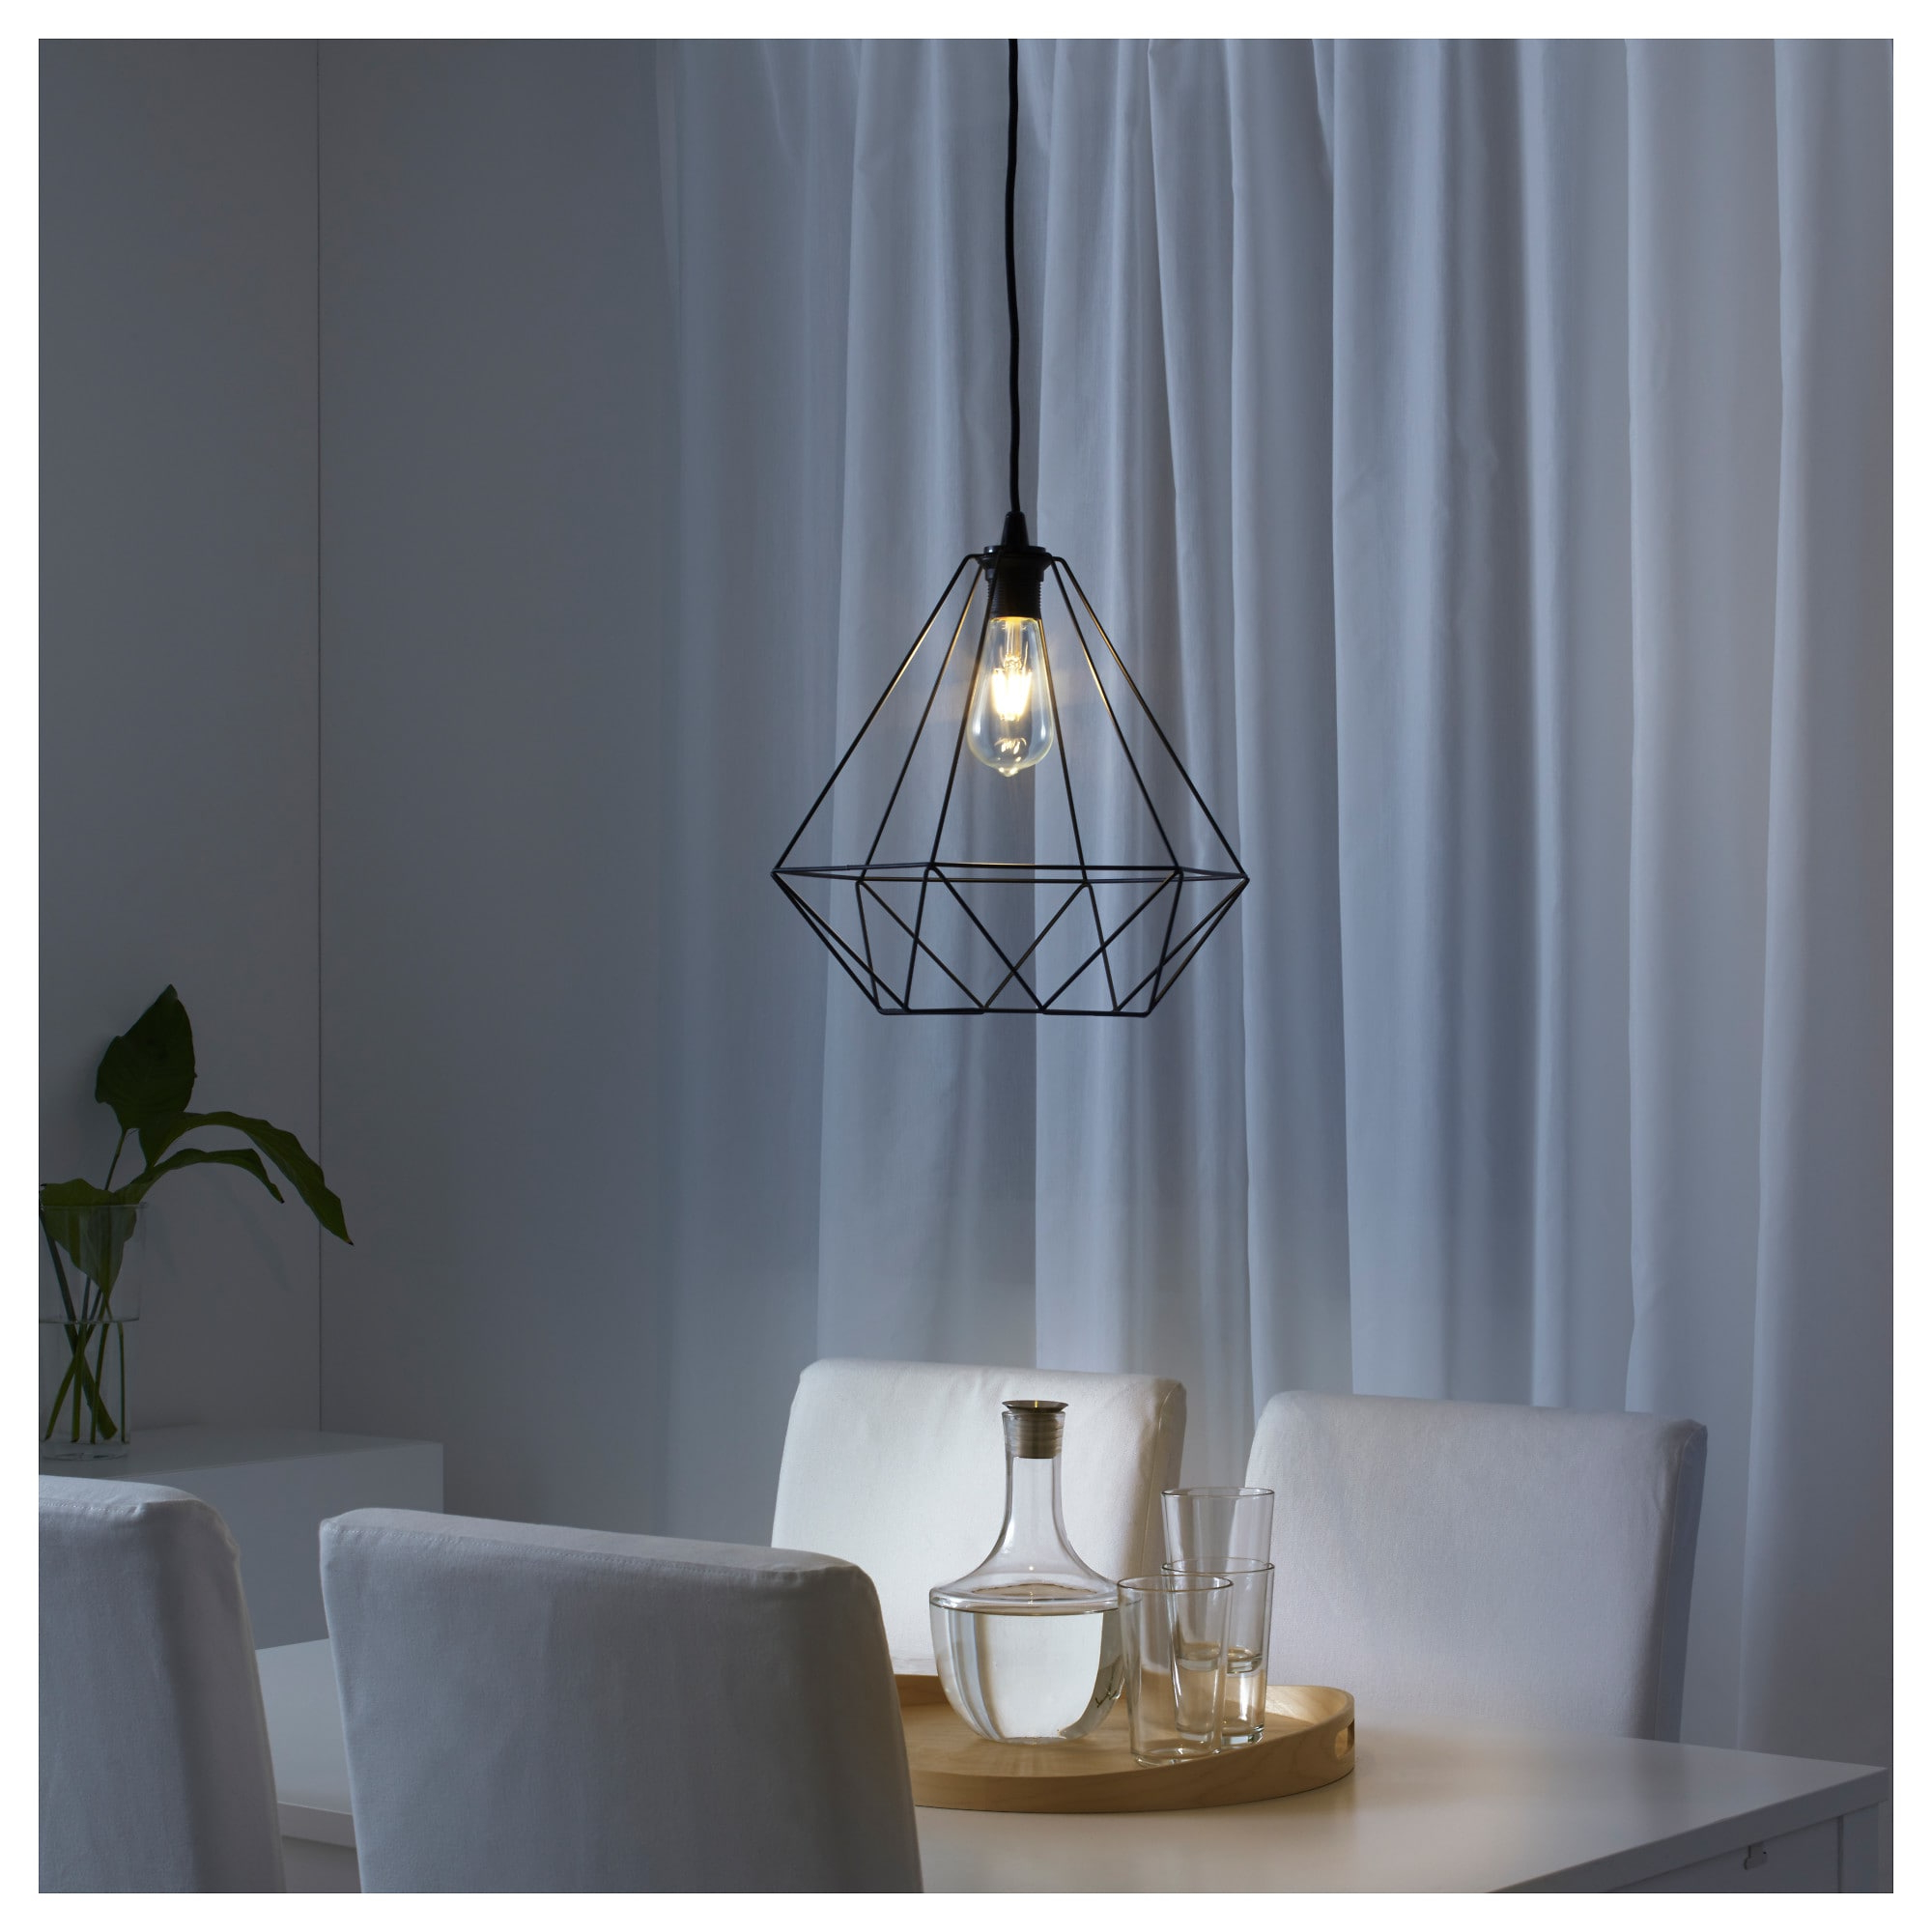 Guro 1 Light Cone Pendants Throughout Latest Ikea Brunsta Black Pendant Lamp Shade (View 10 of 25)